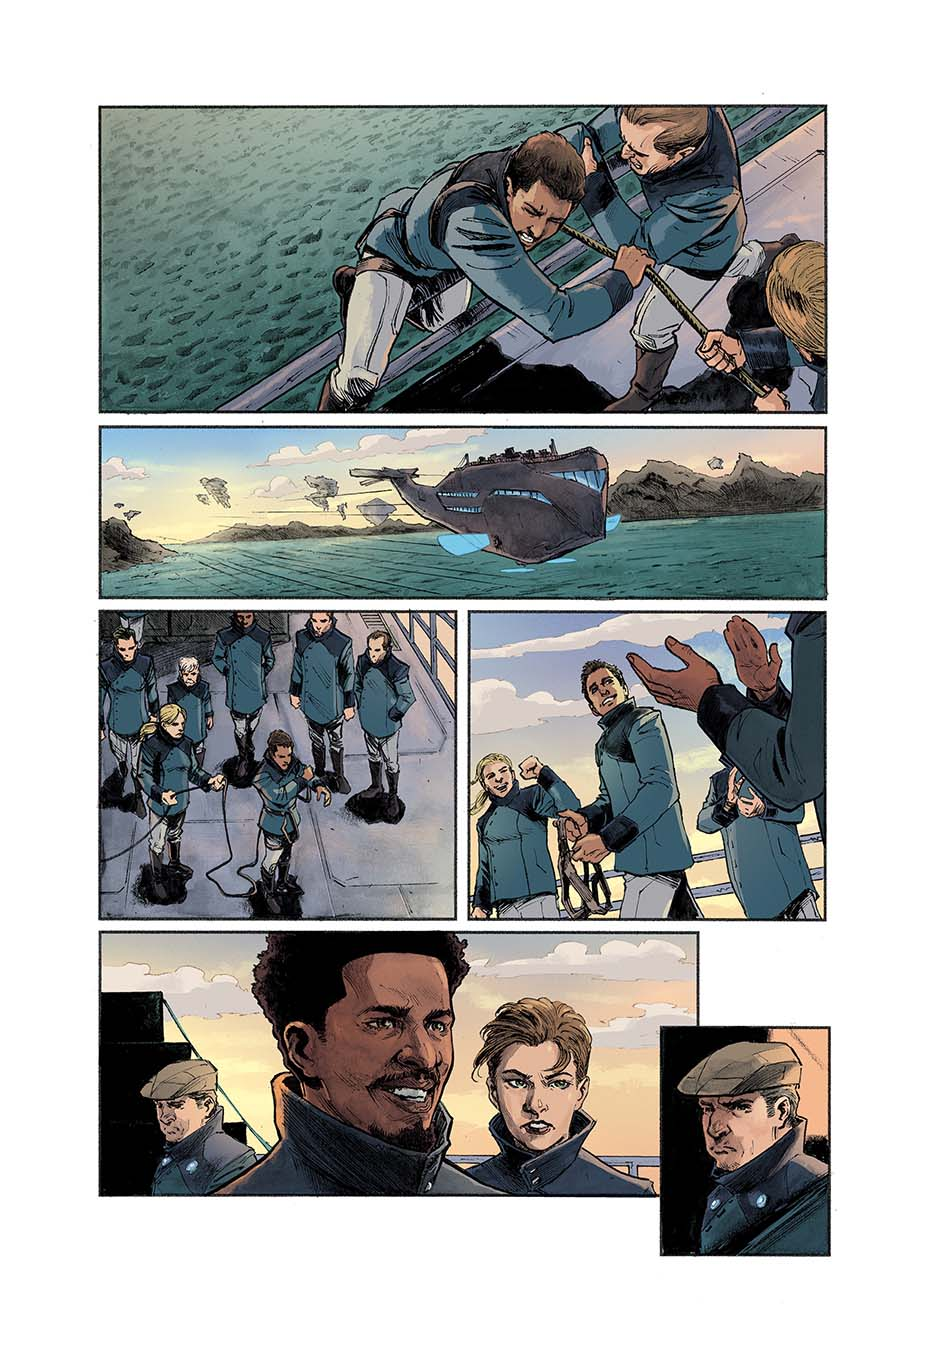 'The Count of Monte Cristo' 1844 Comic Book- Reimagining in Works